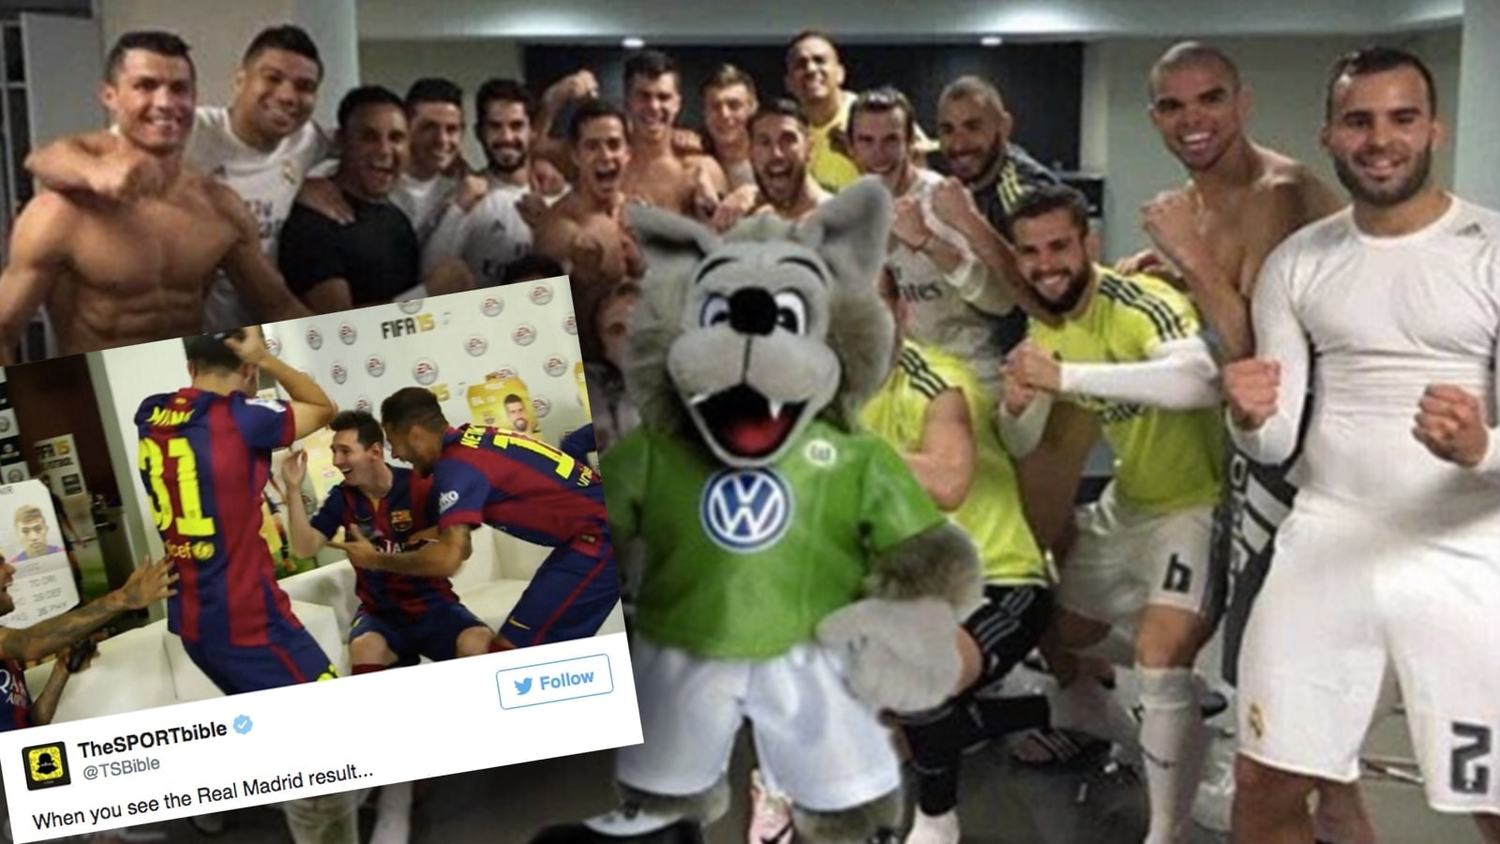 How the internet reacted to Wolfsburg beating Real Madrid